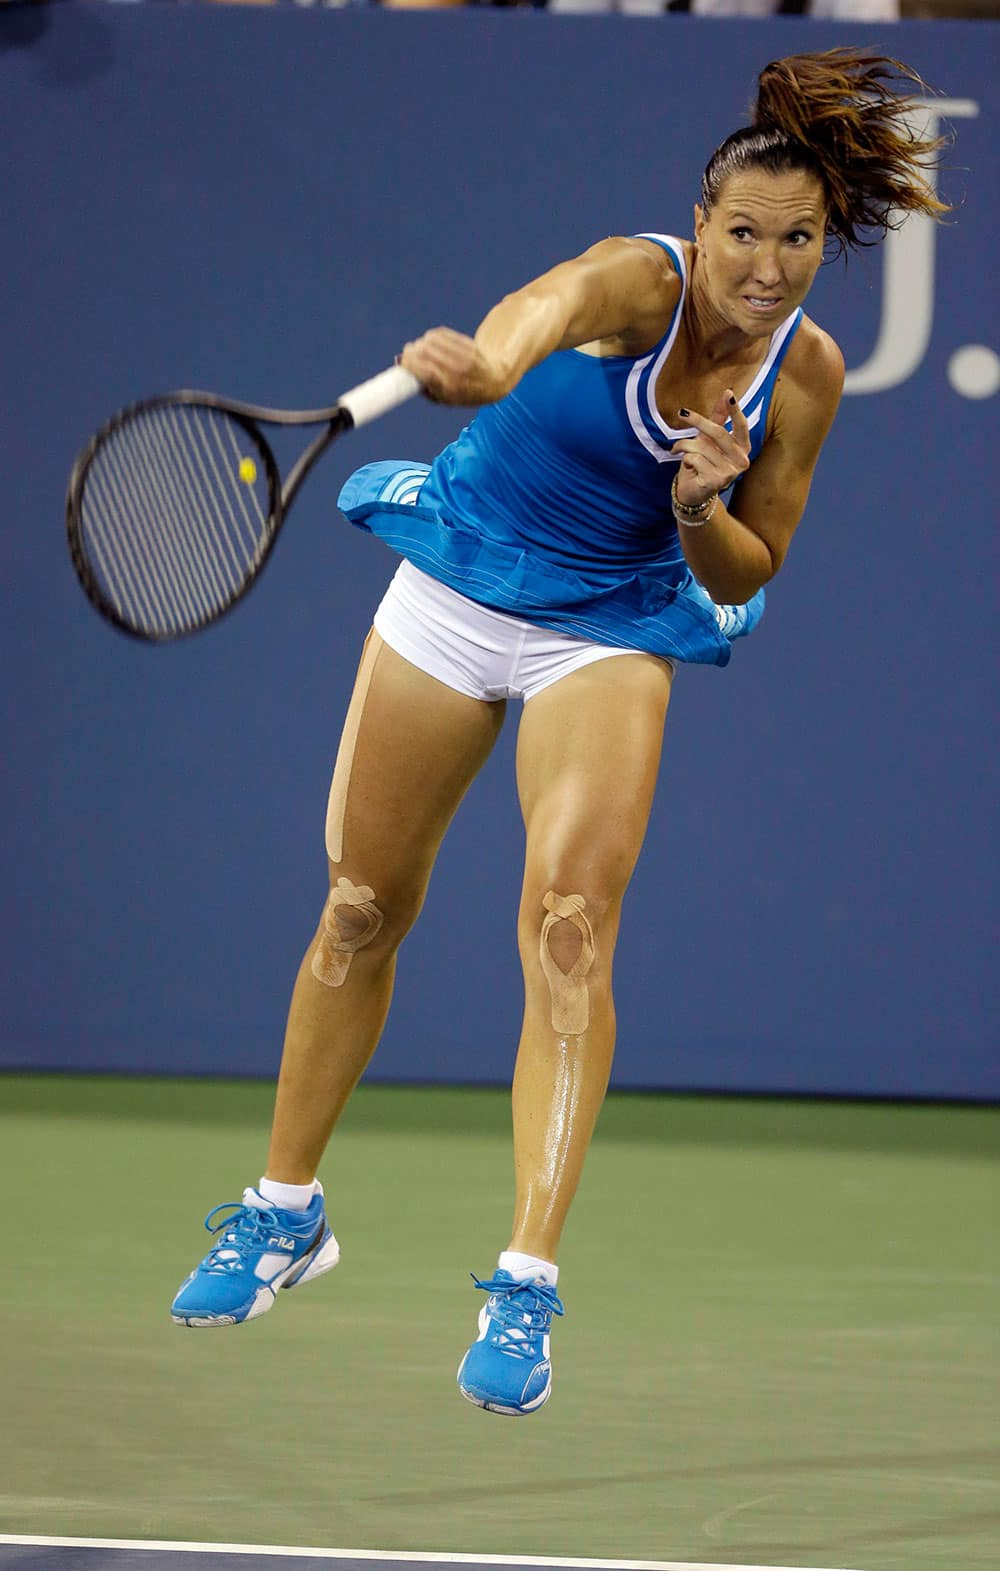 Serbia's Jelena Jankovic serves to Madison Keys during the opening round of the US Open tennis tournament.